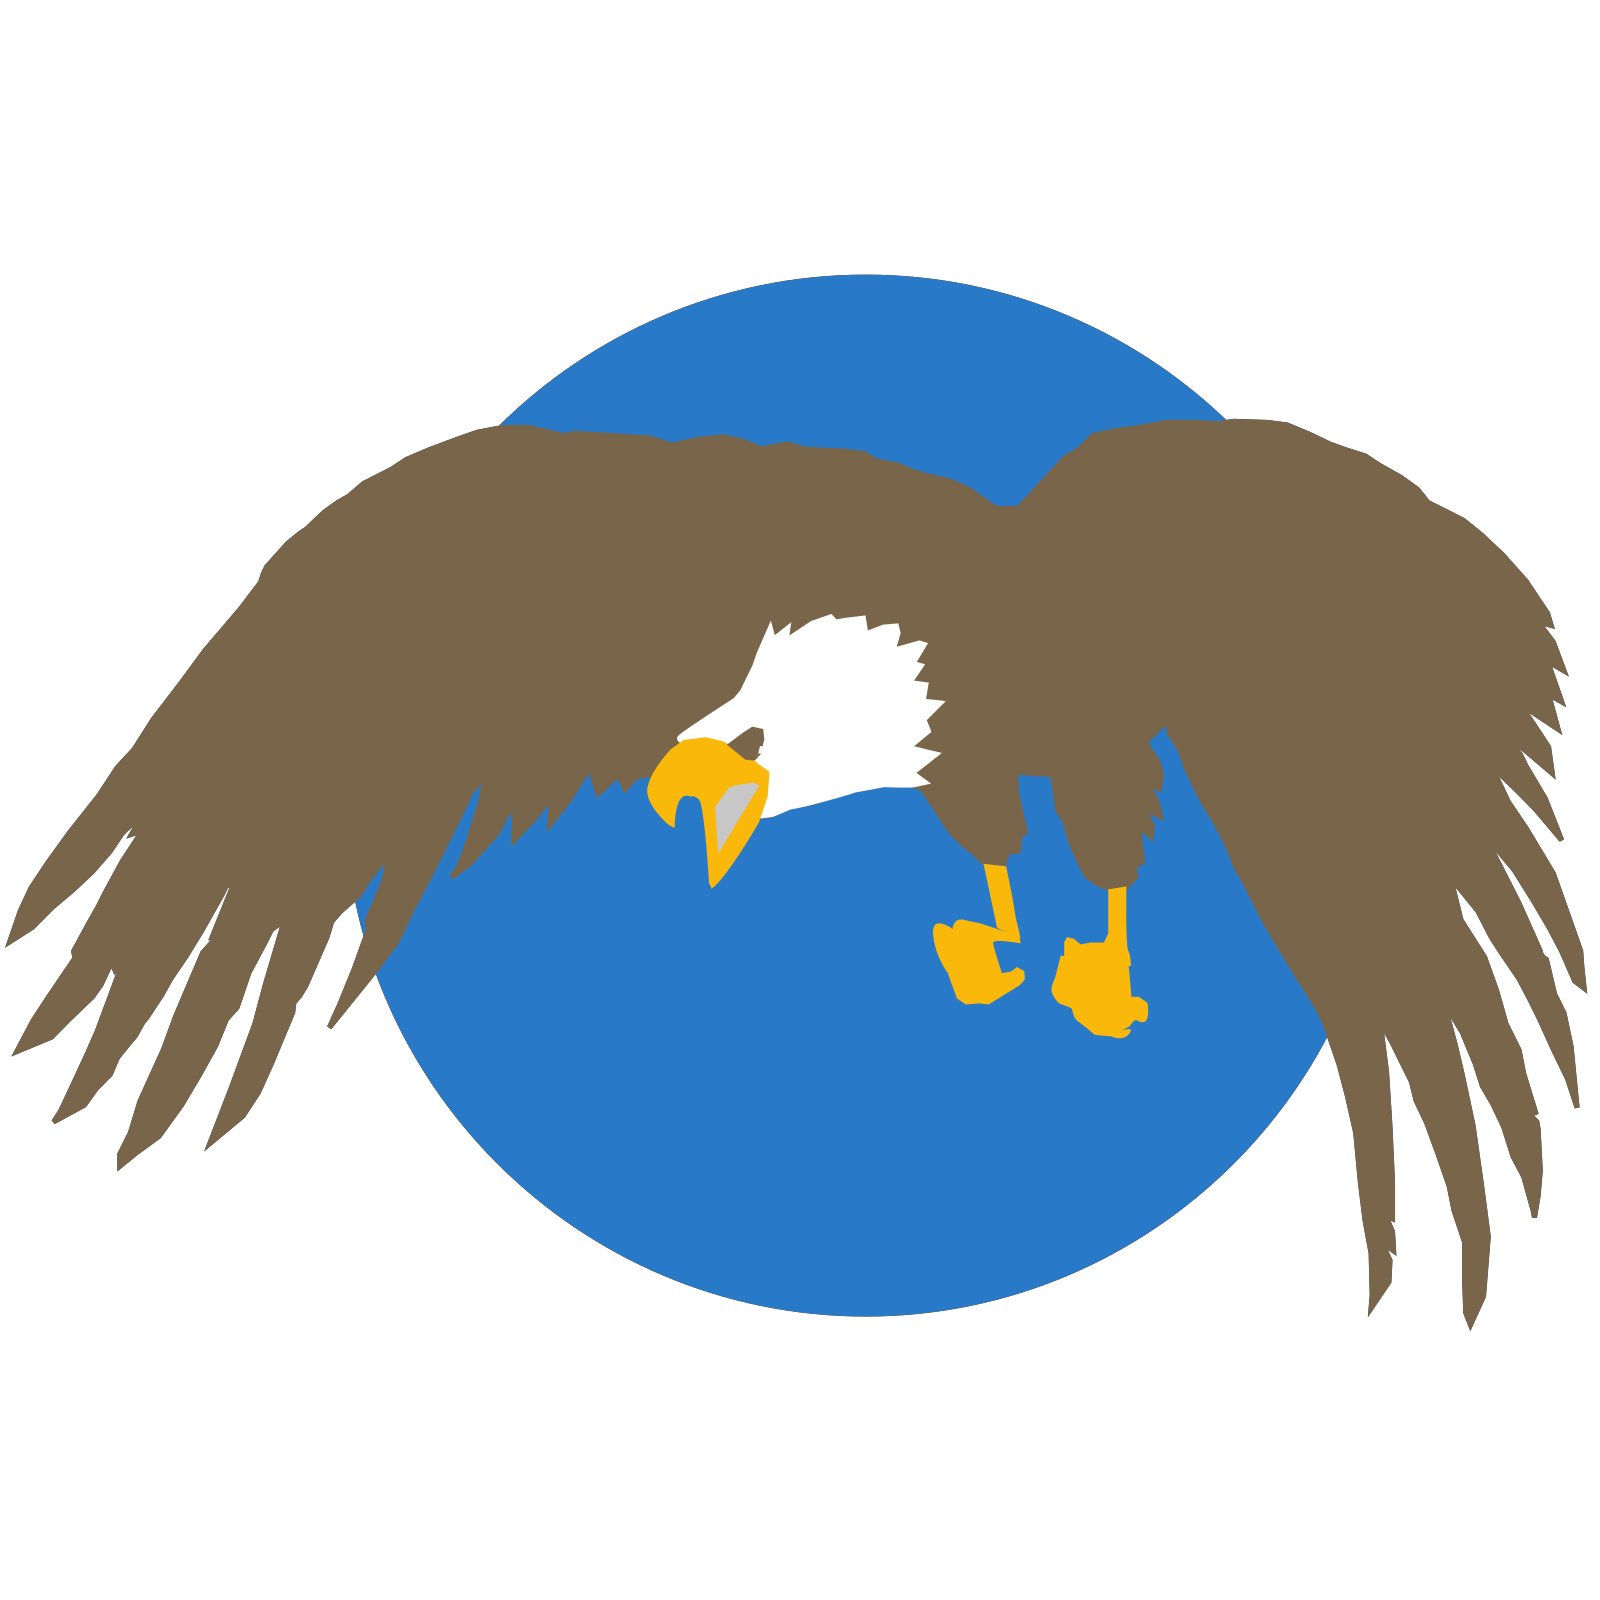 Eagle With Blue Circle Background Clip art, Icon and SVG